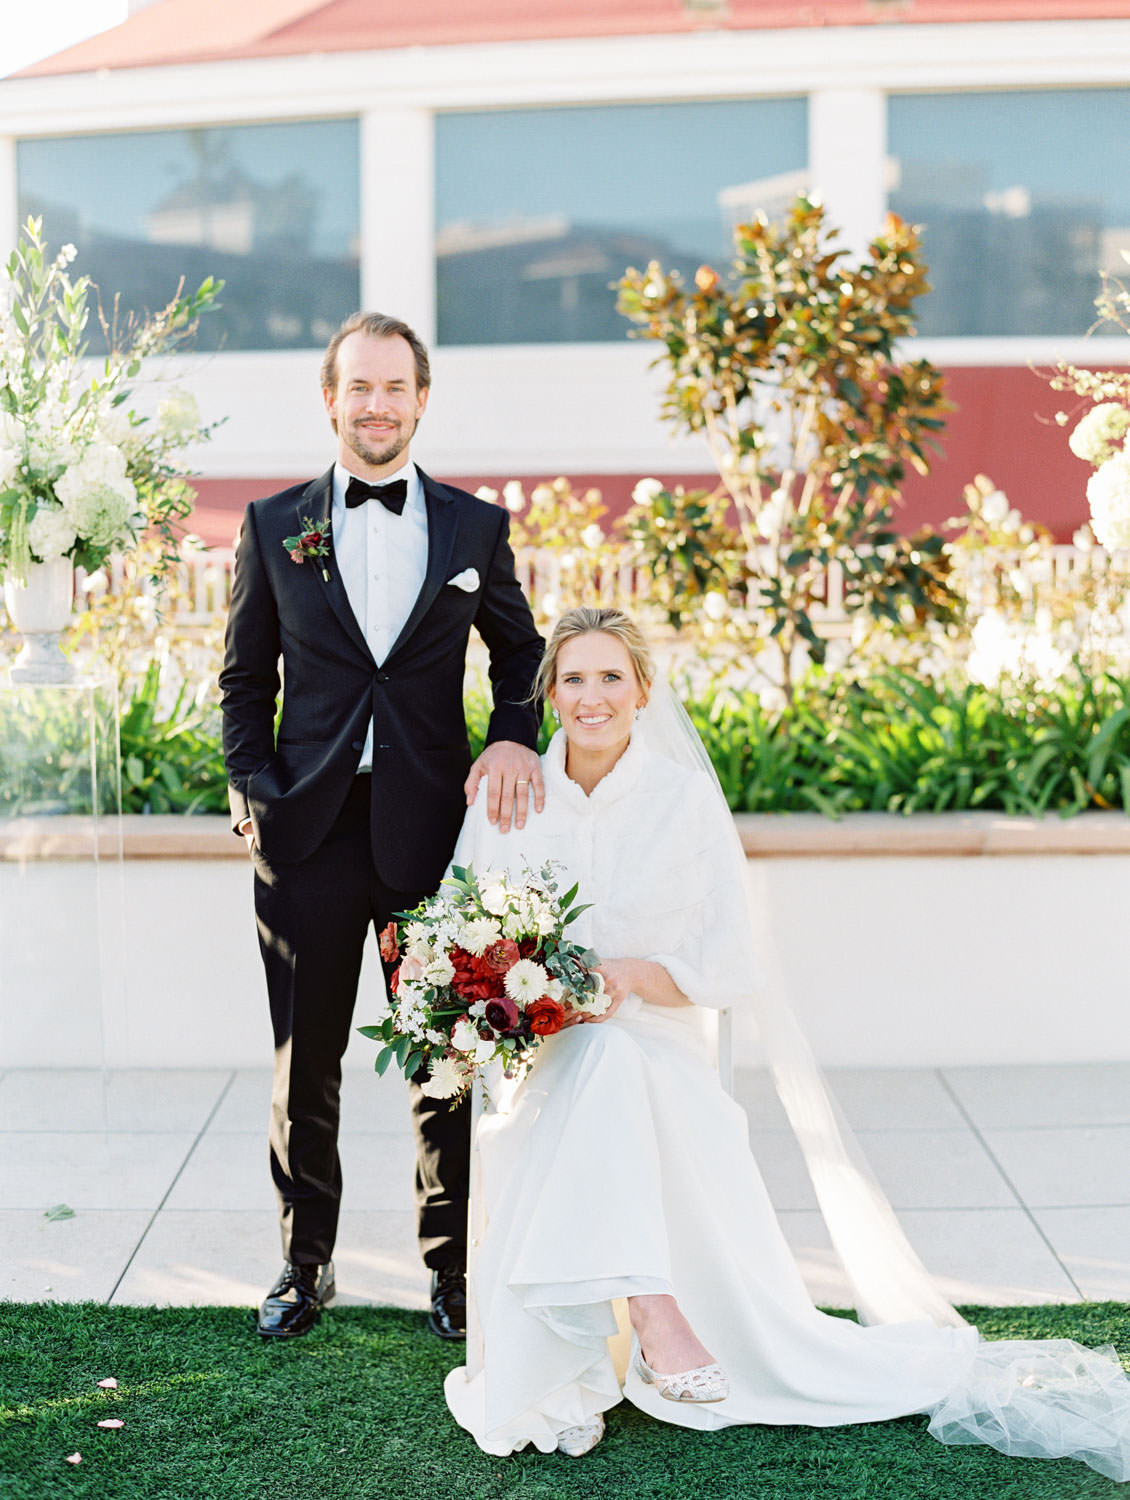 Bride and groom portrait with bride sitting down and groom standing. How to pose at your wedding when you have an injured leg. Hotel Del Coronado wedding on film by Cavin Elizabeth.